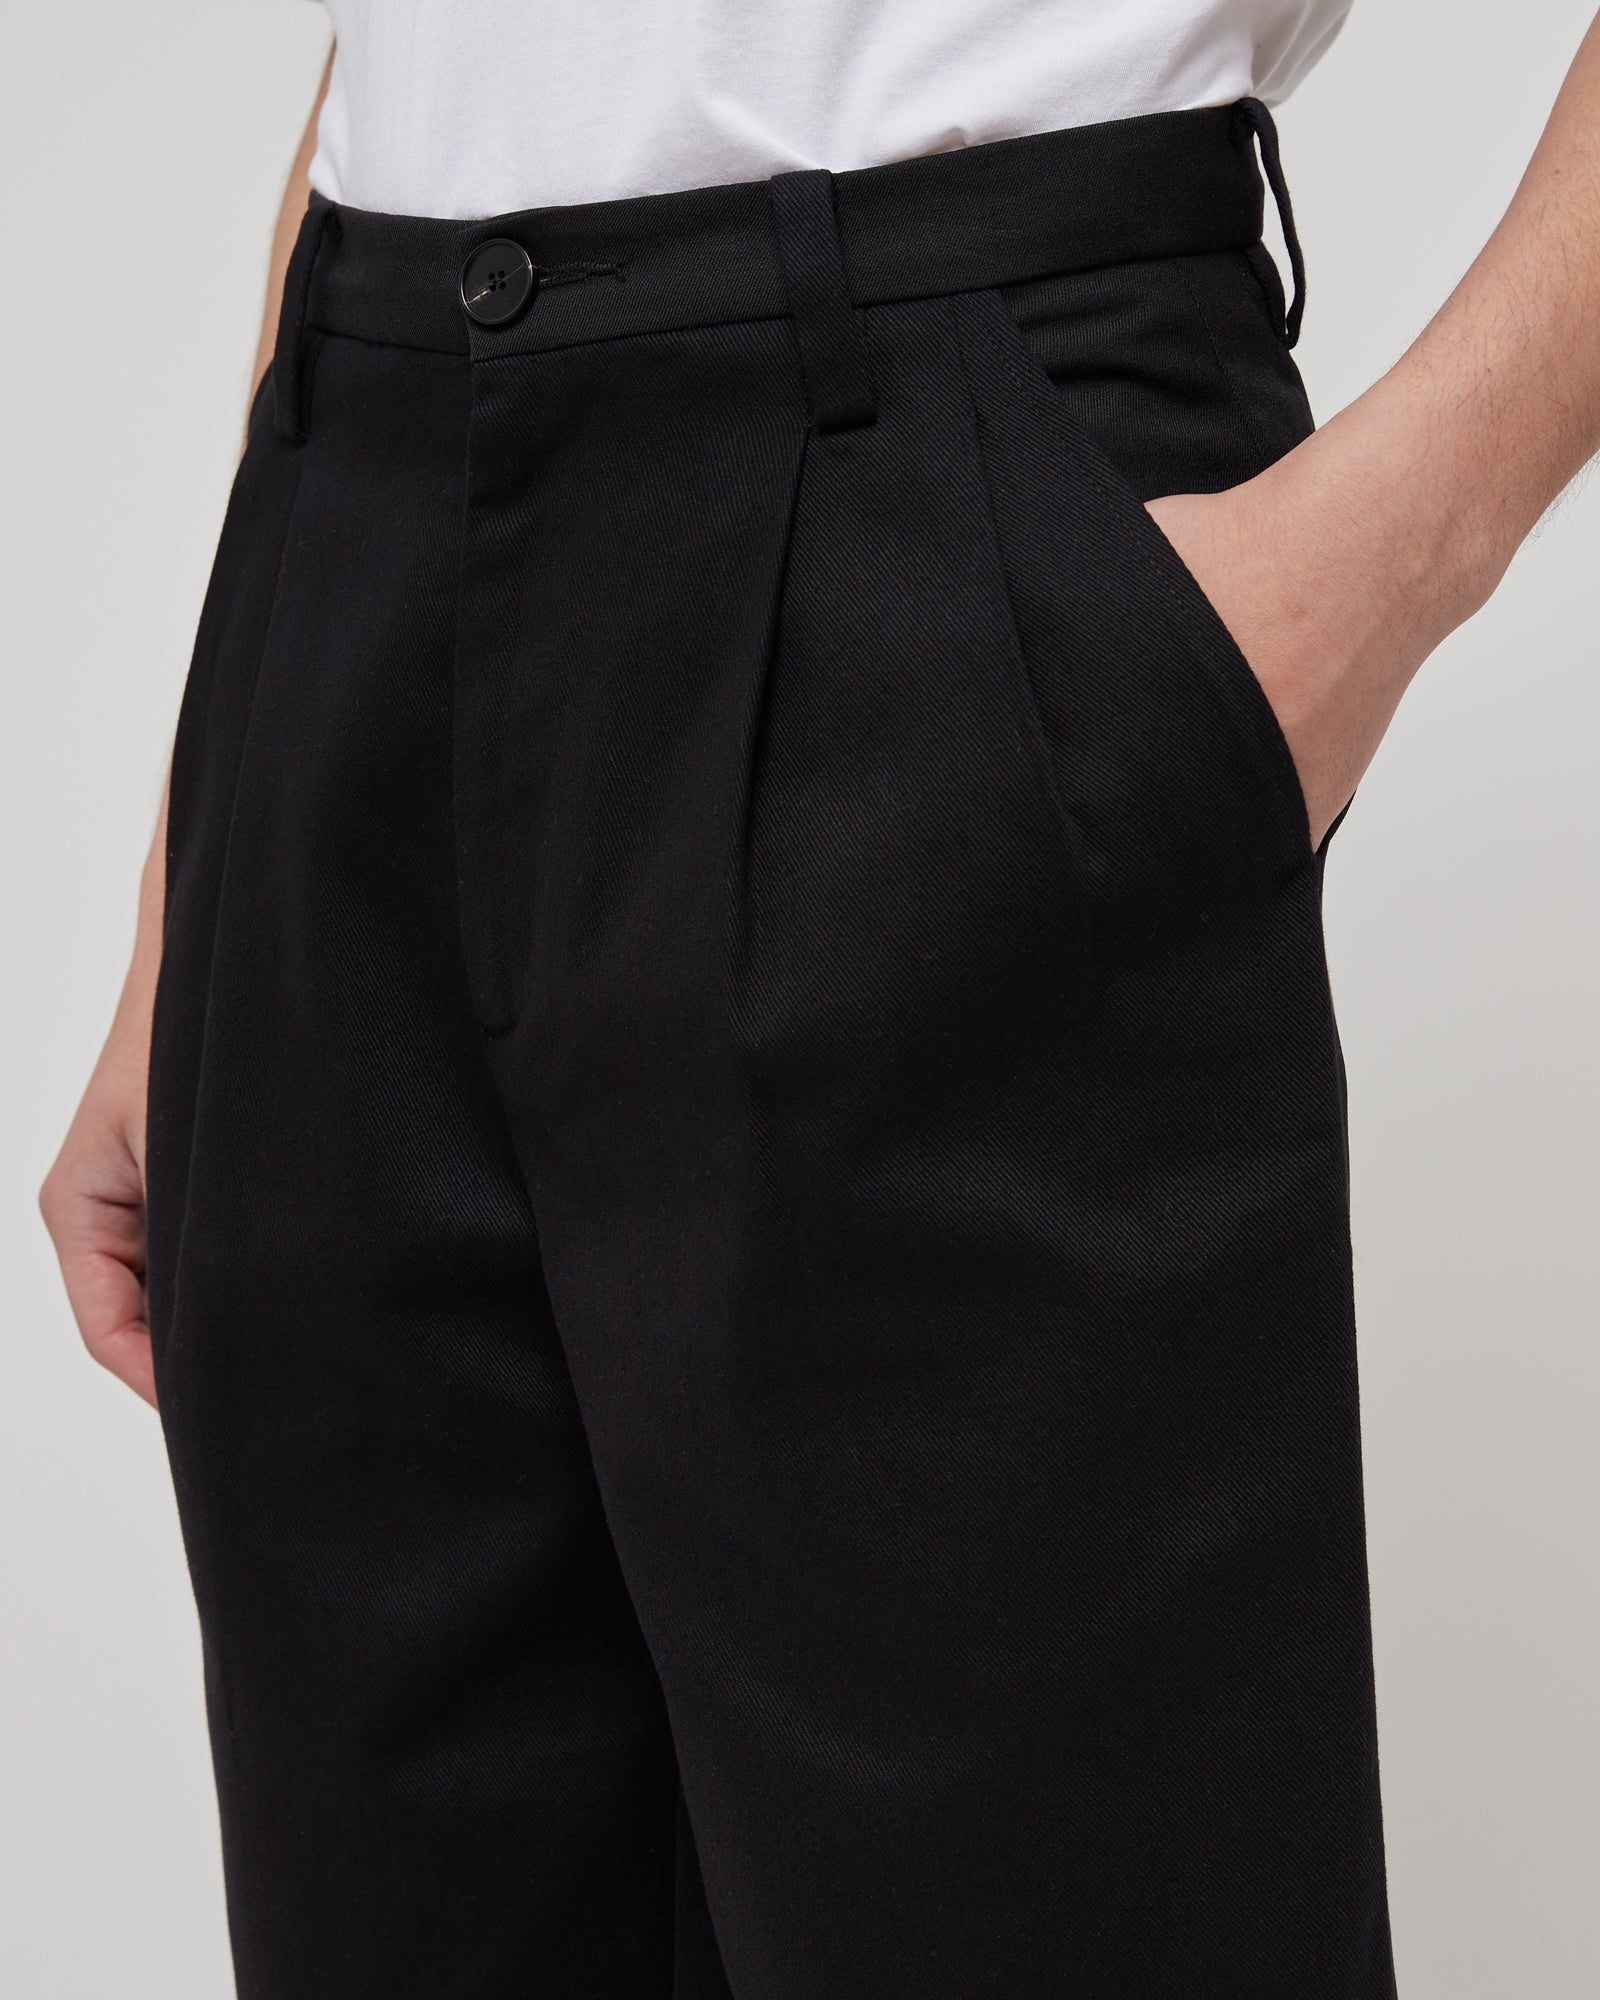 Daily Drive Trouser in Black